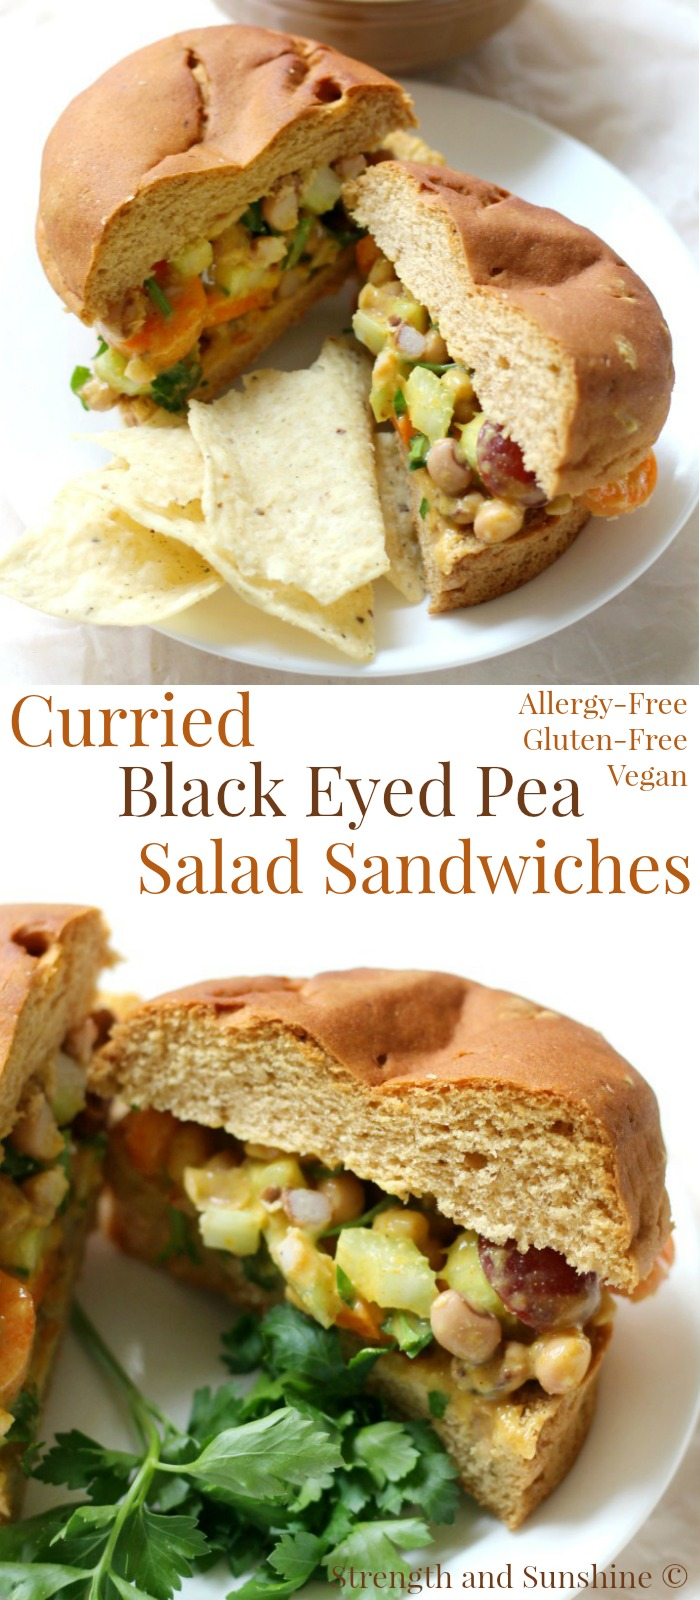 Curried Black Eyed Pea Salad Sandwiches (Gluten-Free, Vegan) | Strength and Sunshine @RebeccaGF666 An easy healthy lunch recipe for any day of the week. Curried Black Eyed Pea Salad Sandwiches that are gluten-free, vegan, and top 8 allergy-free. Easy to whip up on your meal prep days and have ready to go in the fridge!